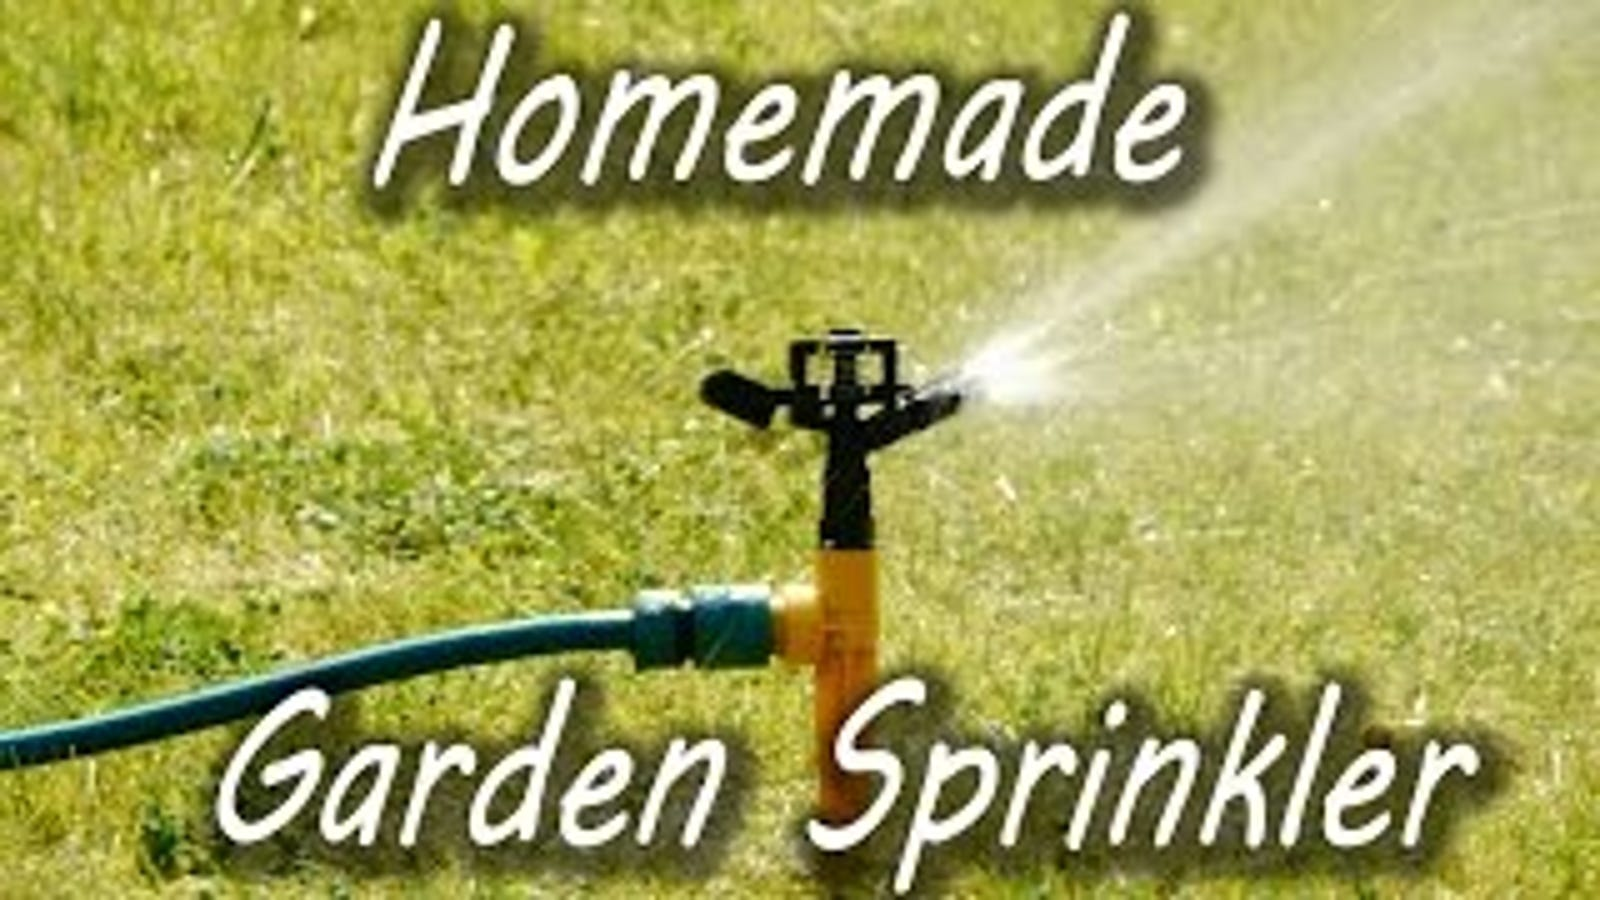 Tapping Into The Water Line For Lawn Sprinklers Amp Irrigation Systems Controller Wiring Diagram Likewise Rain Bird Sprinkler Valve Find More Garden Information About Rian System Kit Valvehigh Quality Headchina Repair